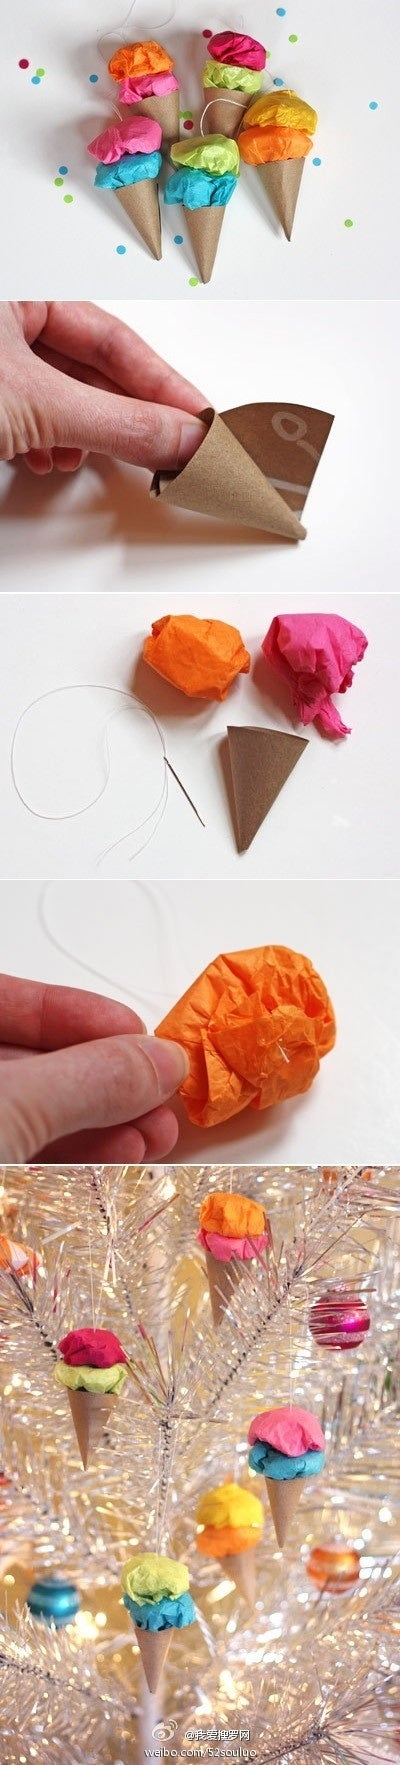 Tie onto a tree or use in a garland.